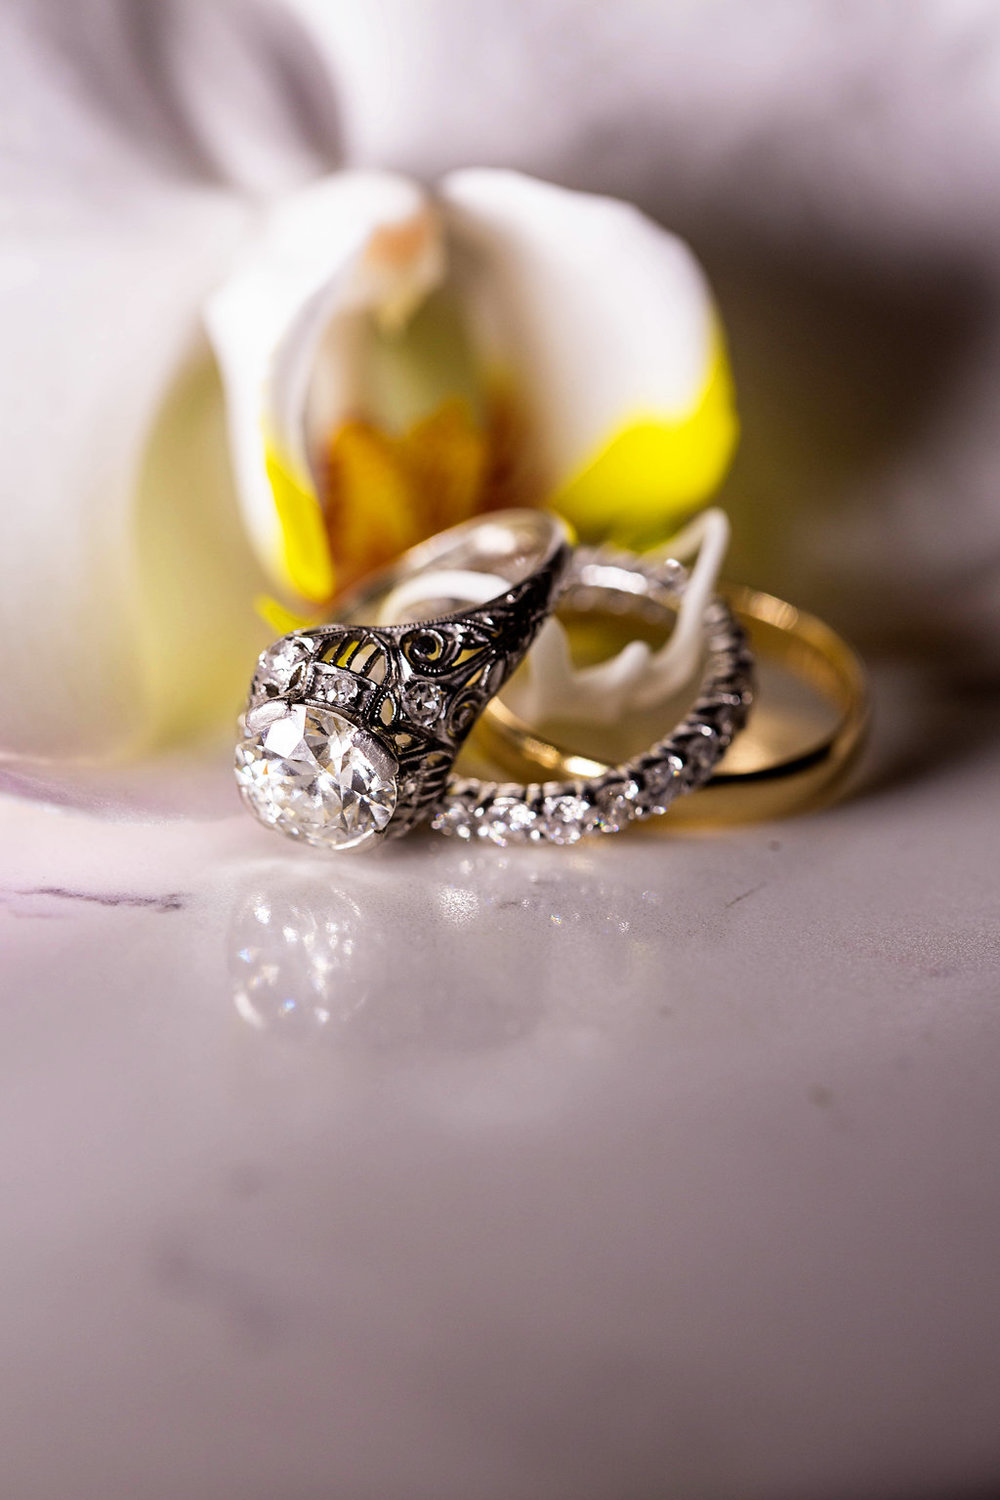 Gorgeous Vintage Engagement Ring - Rhode Island Wedding Venue - Belle Mer Wedding